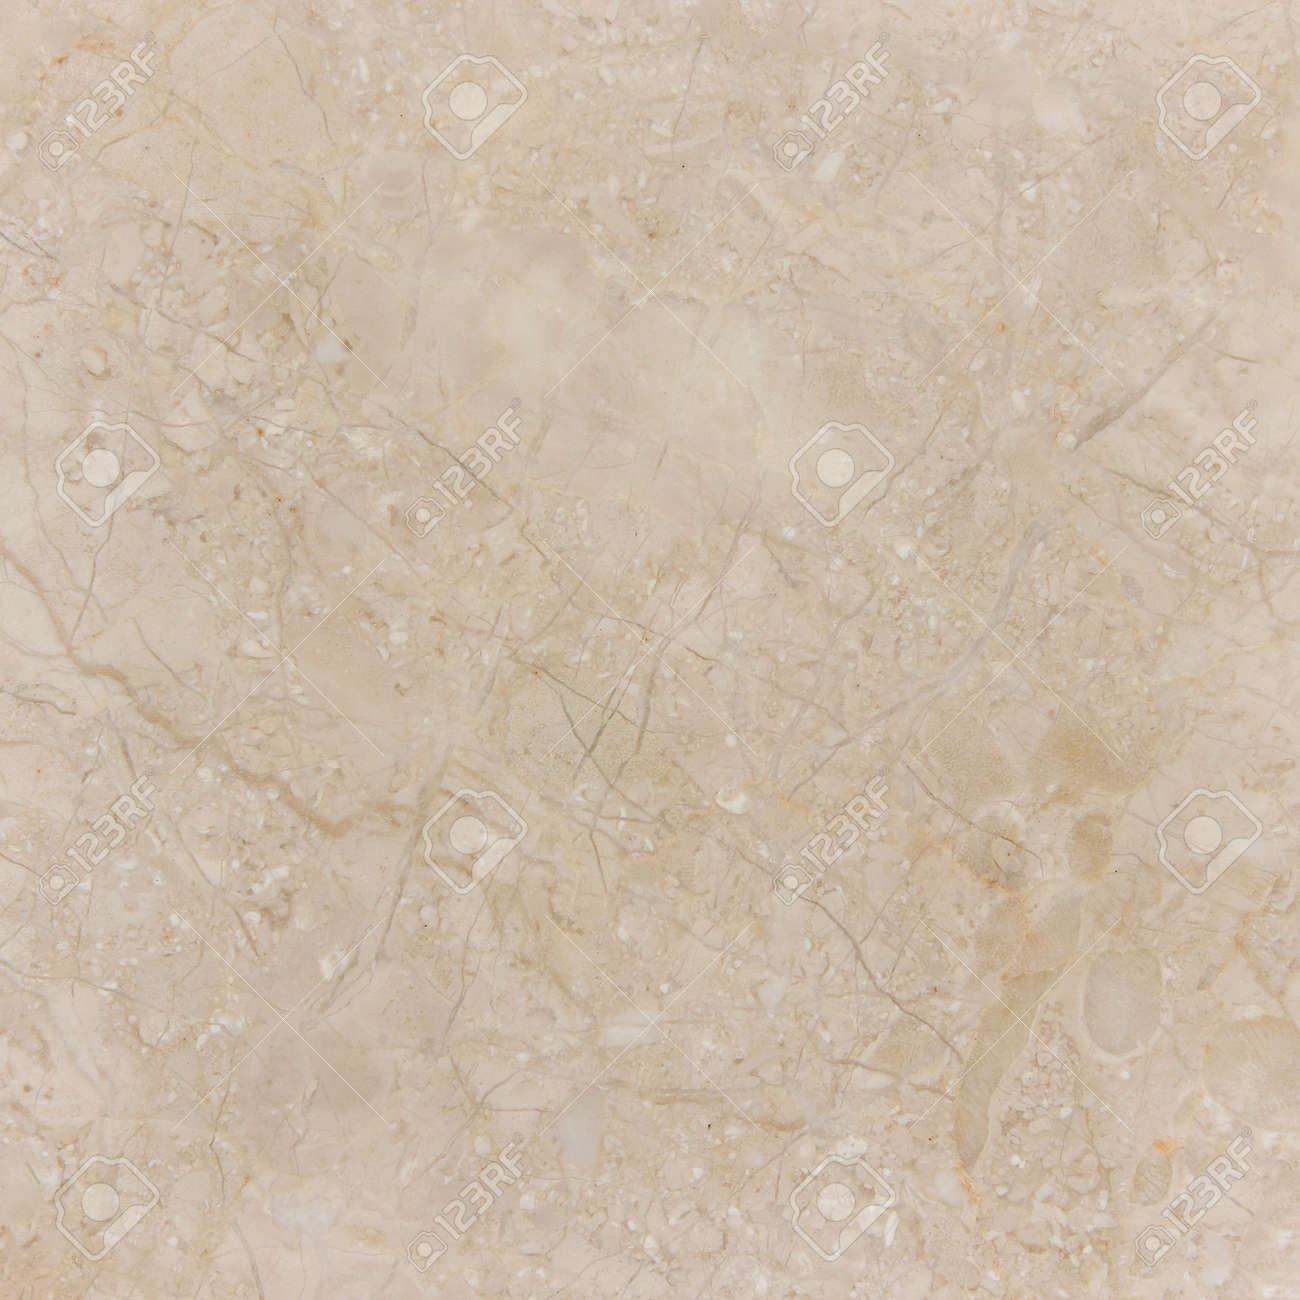 Cool Wallpaper Marble Cream - 41240922-marble-background-with-natural-pattern-cream-marble-stone-wall-texture-  Collection_597236.jpg